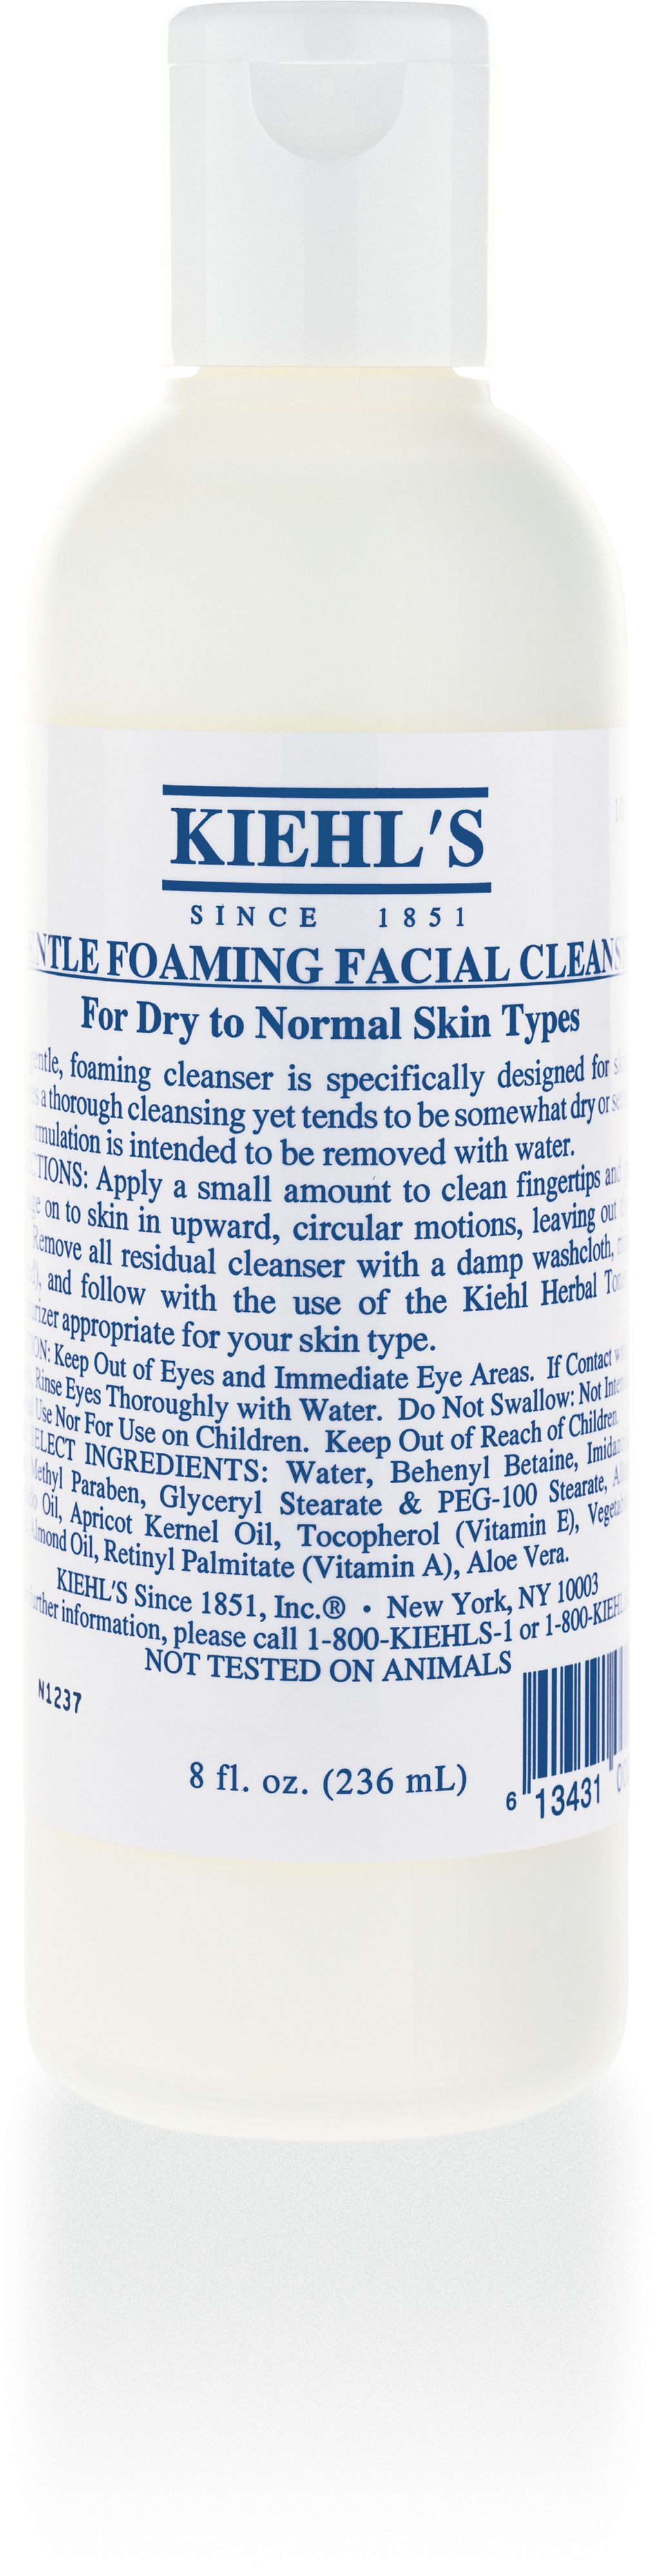 Gentle Foaming Facial Cleanser, 250ml